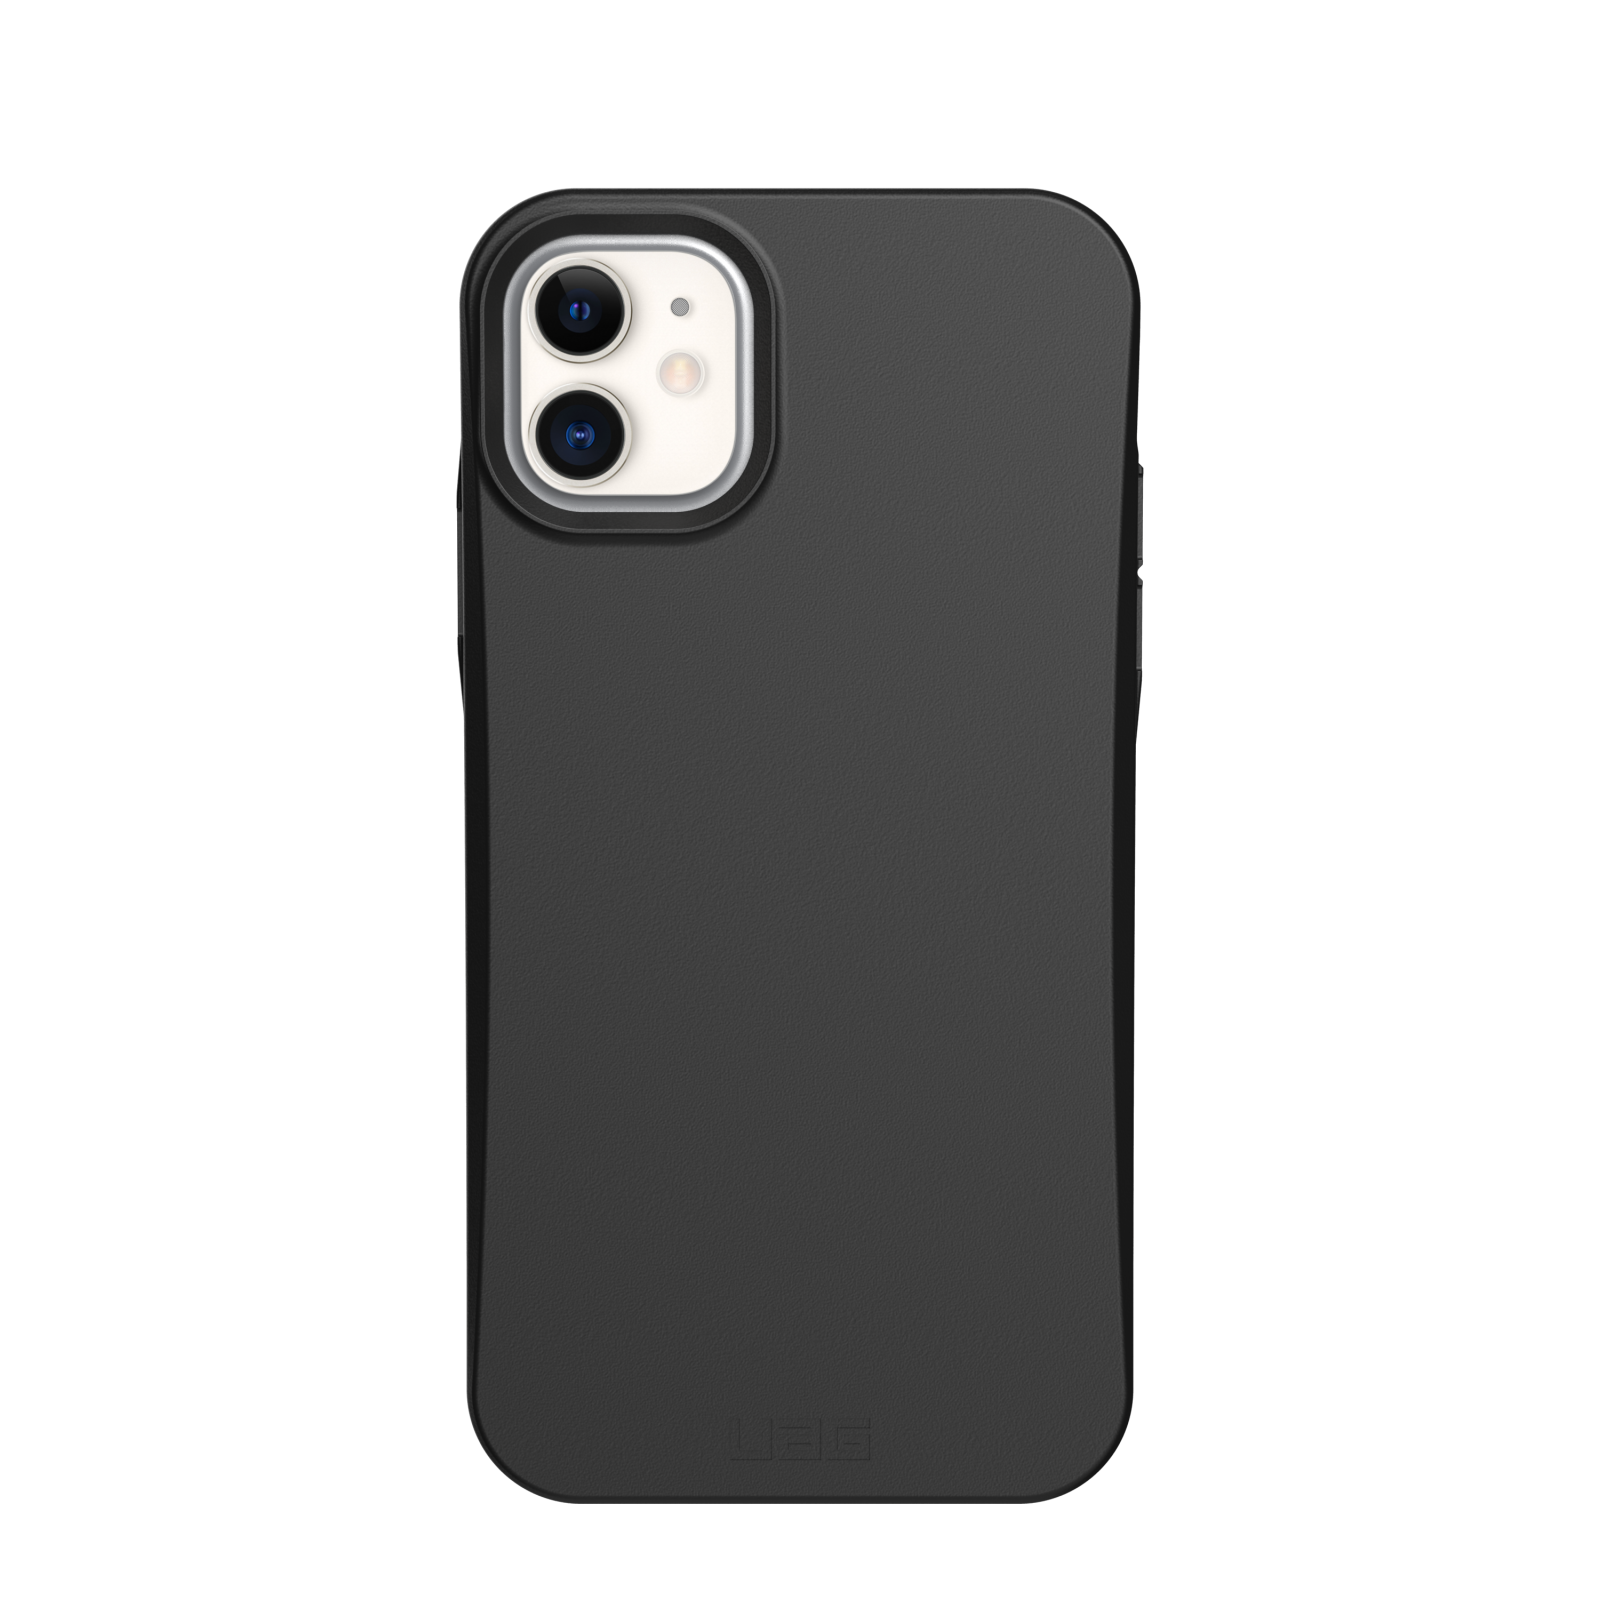 ỐP LƯNG UAG OUTBACK CHO IPHONE 11 ( 6.1inch ) - Black